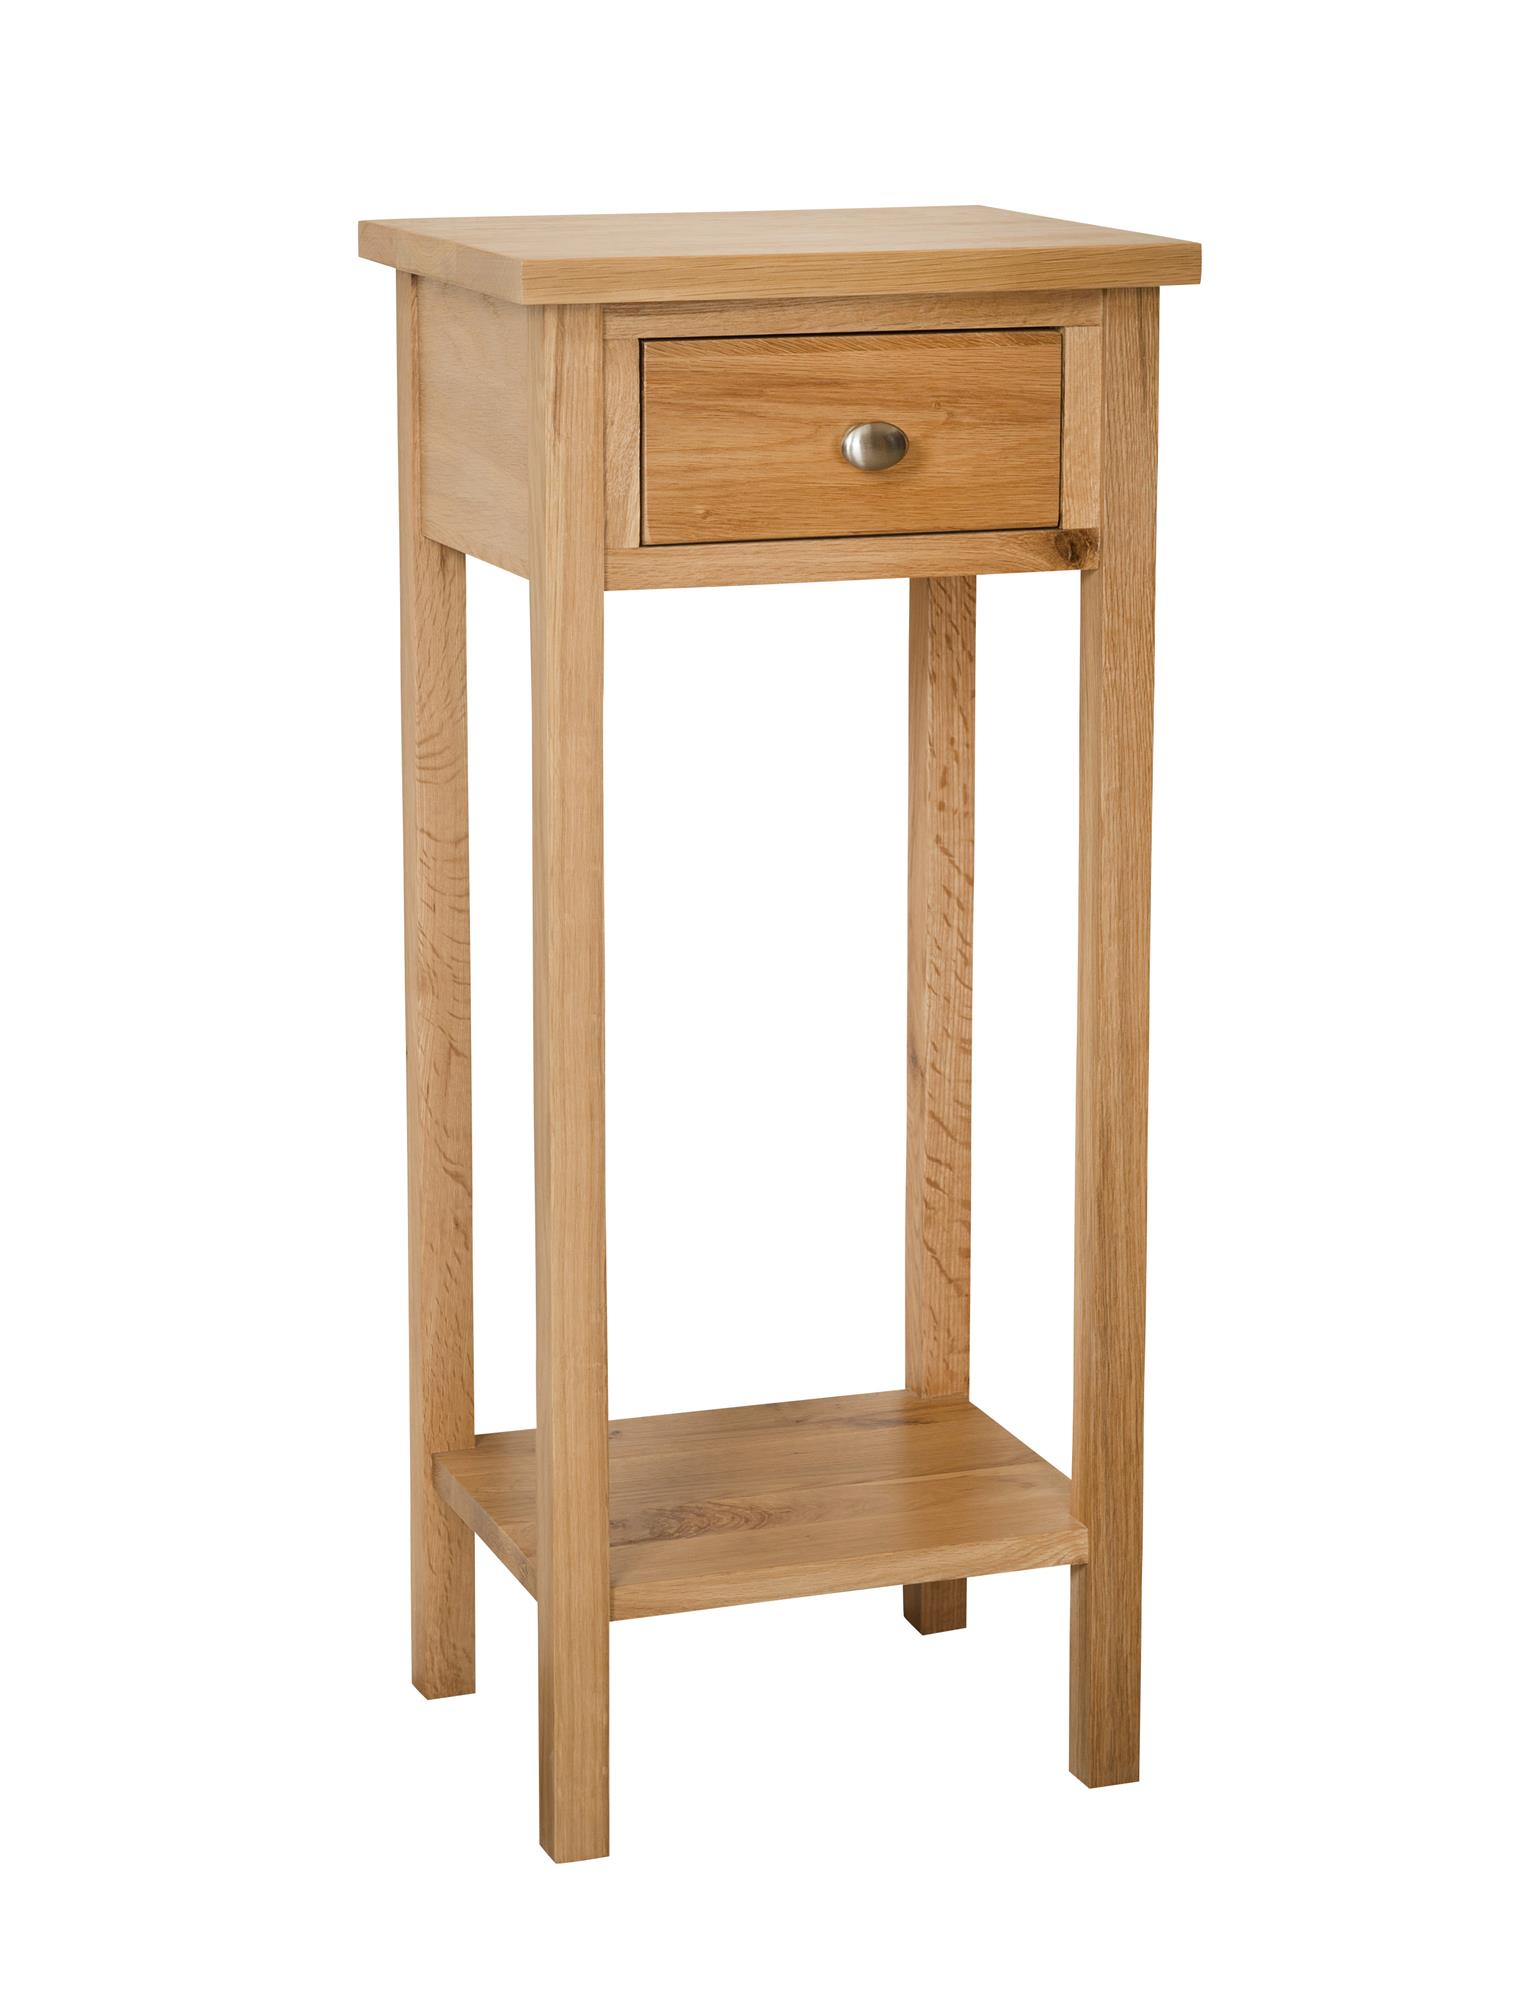 OAK - SMALL TELEPHONE TABLE